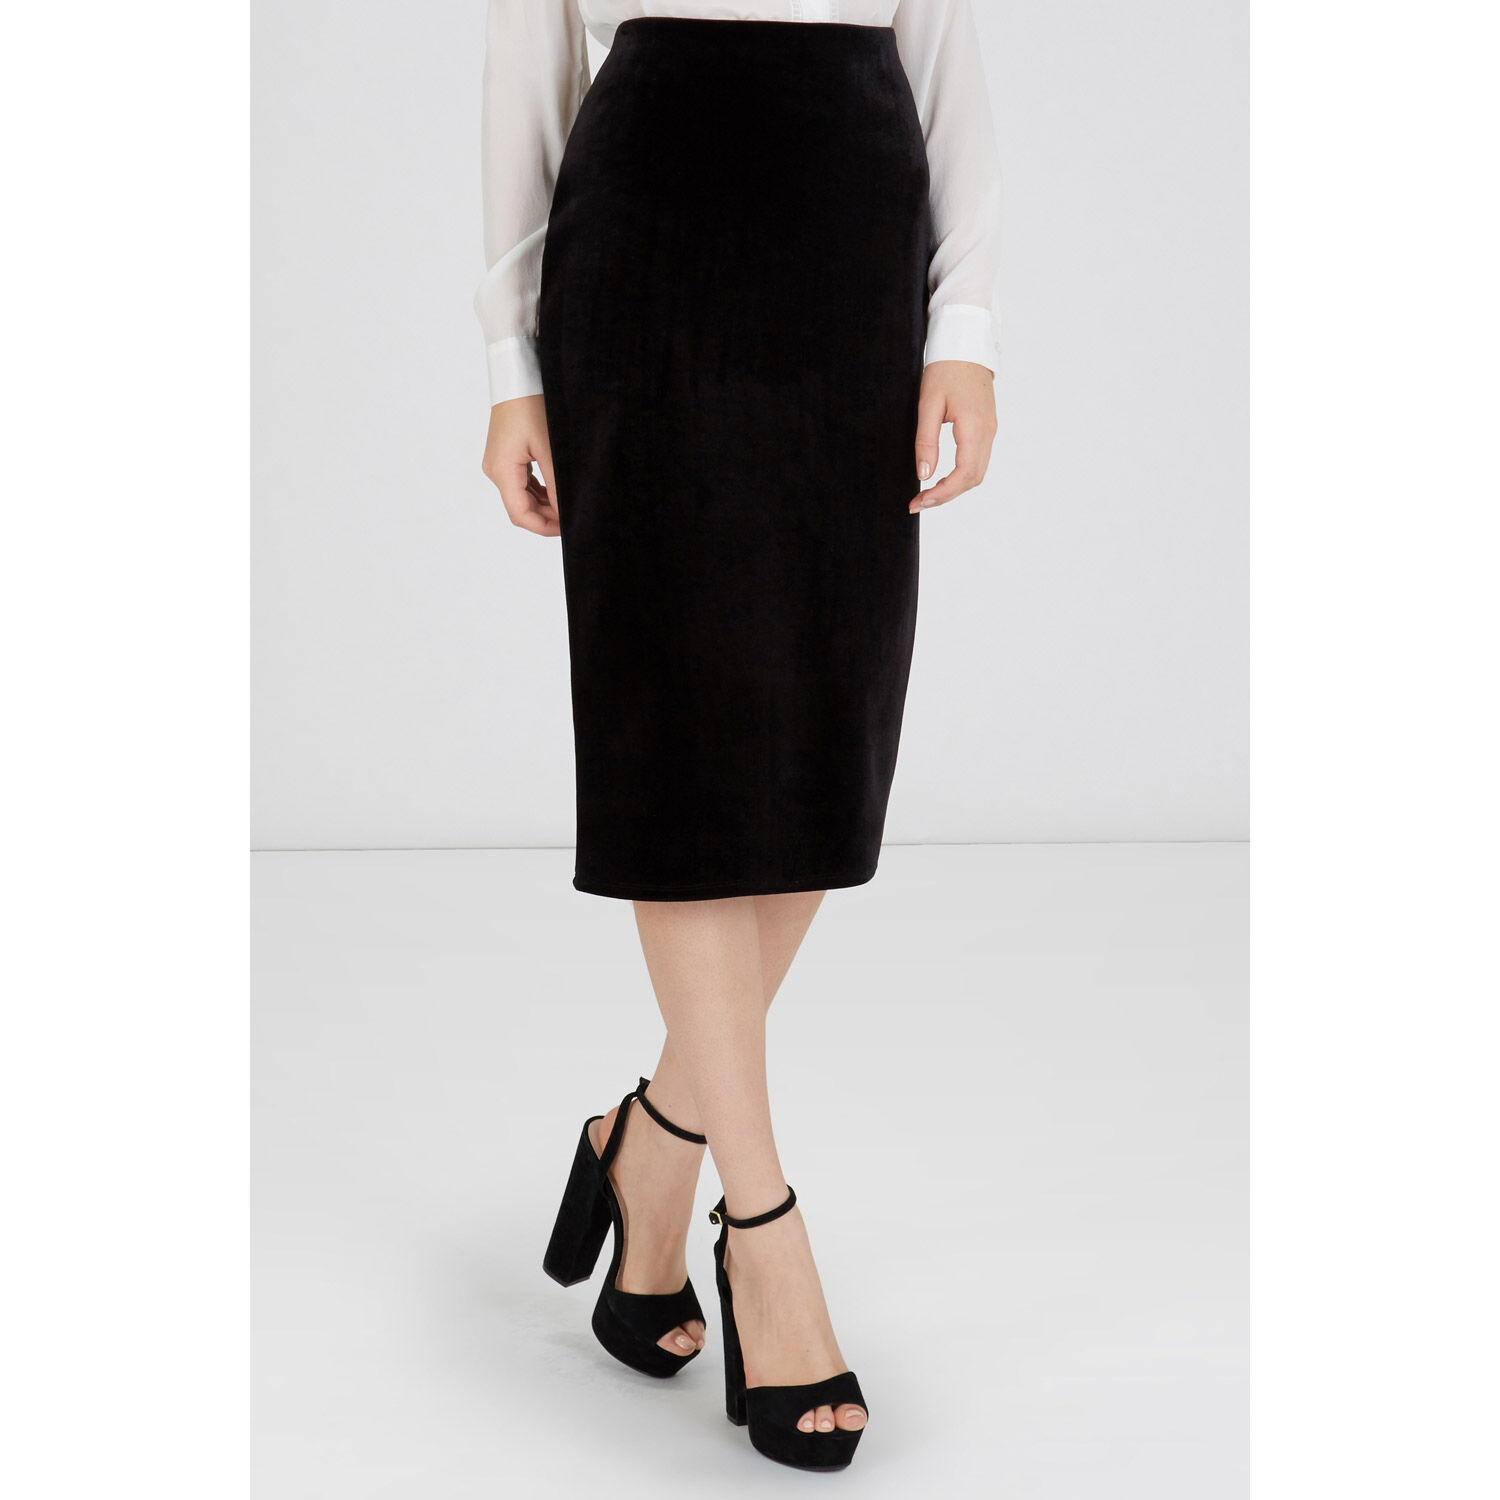 Warehouse, BONDED VELVET PENCIL SKIRT Black 1